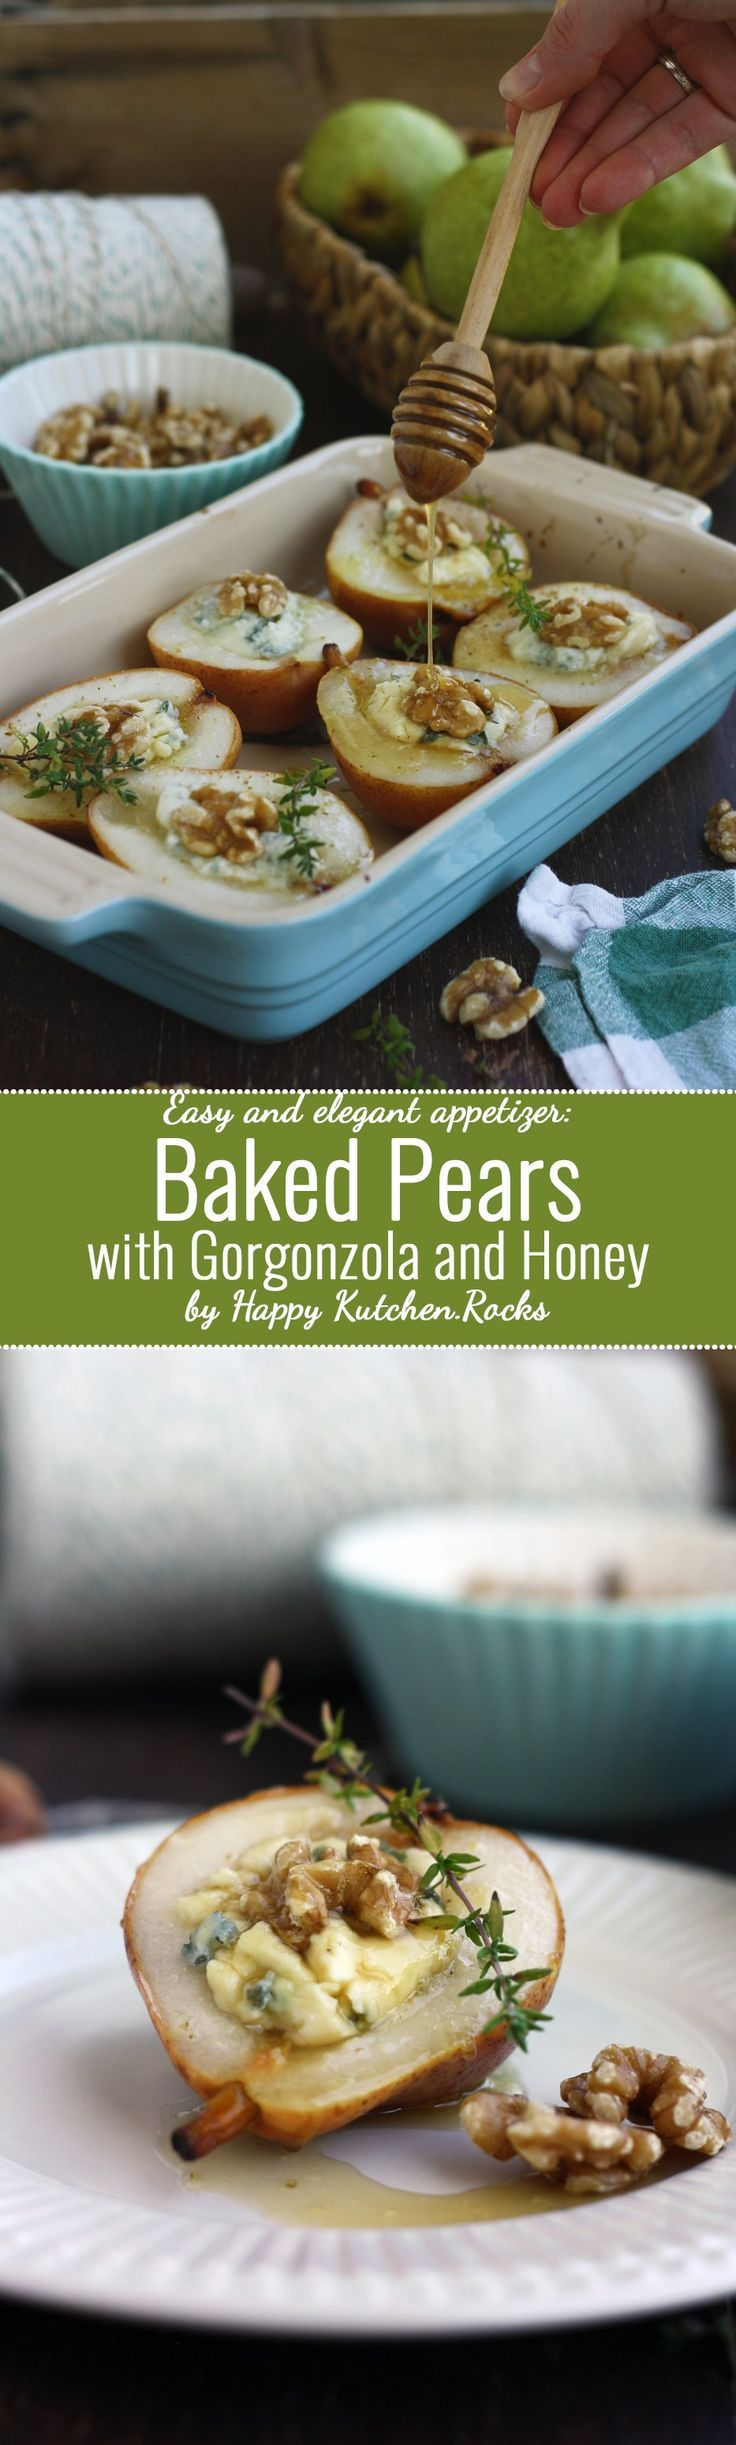 Baked Pears with Gorgonzola and Honey: Easy, delicious and elegant appetizer for…